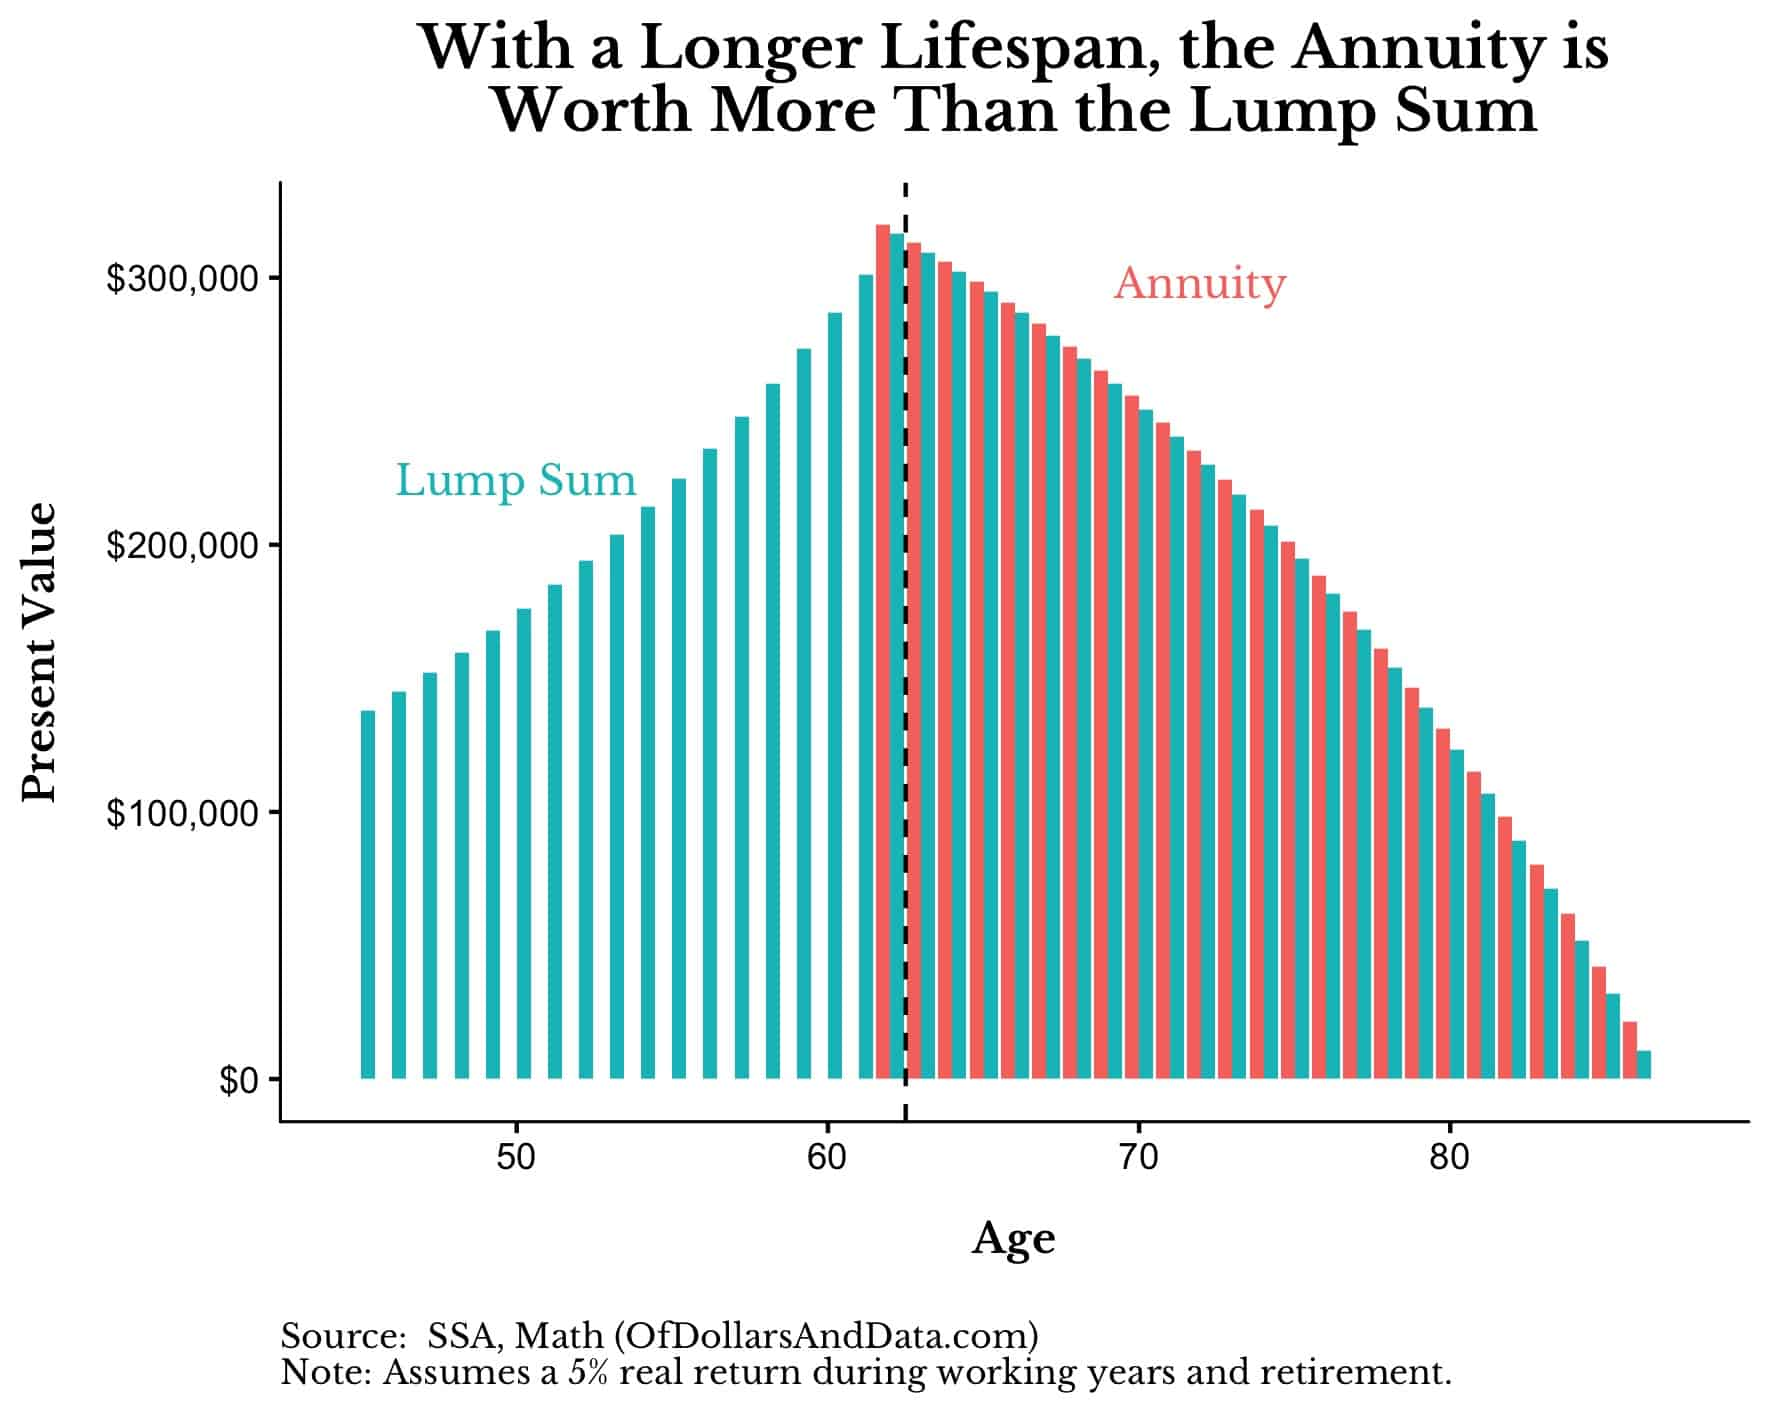 lump sum and annuity present values by age where the annuity is worth more